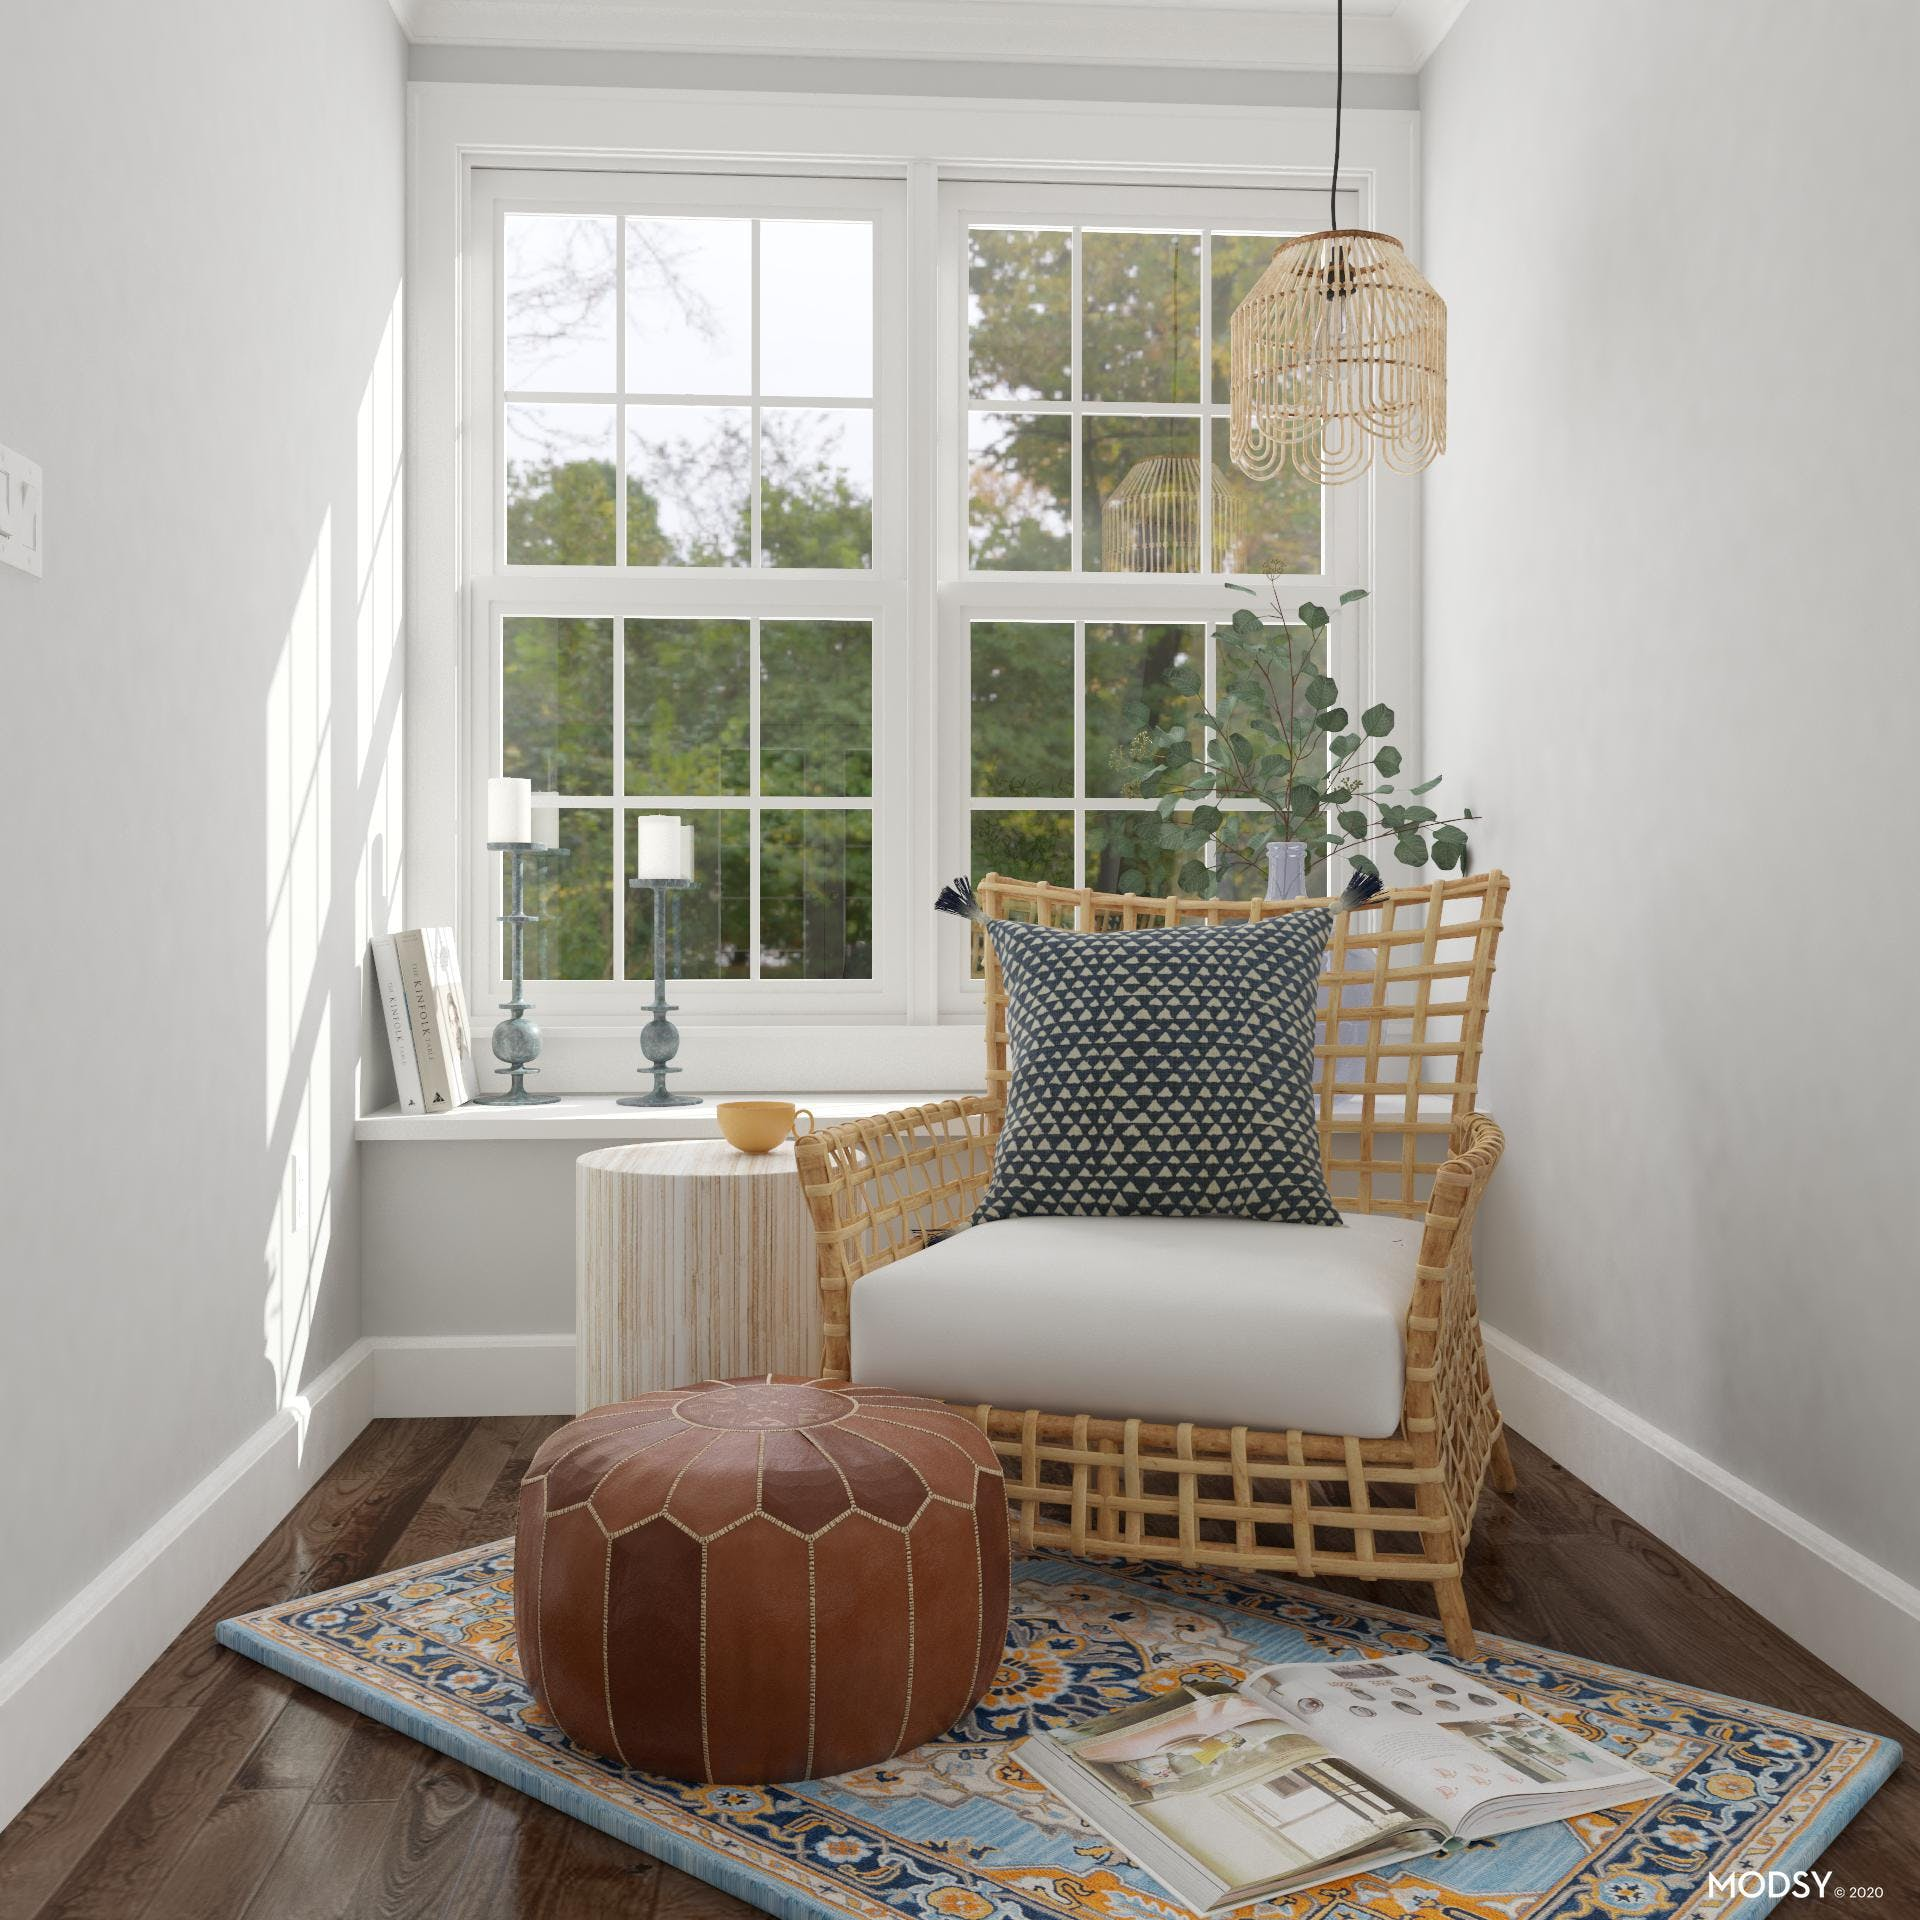 Eclectic Style Reading Nook With Colorful Rug